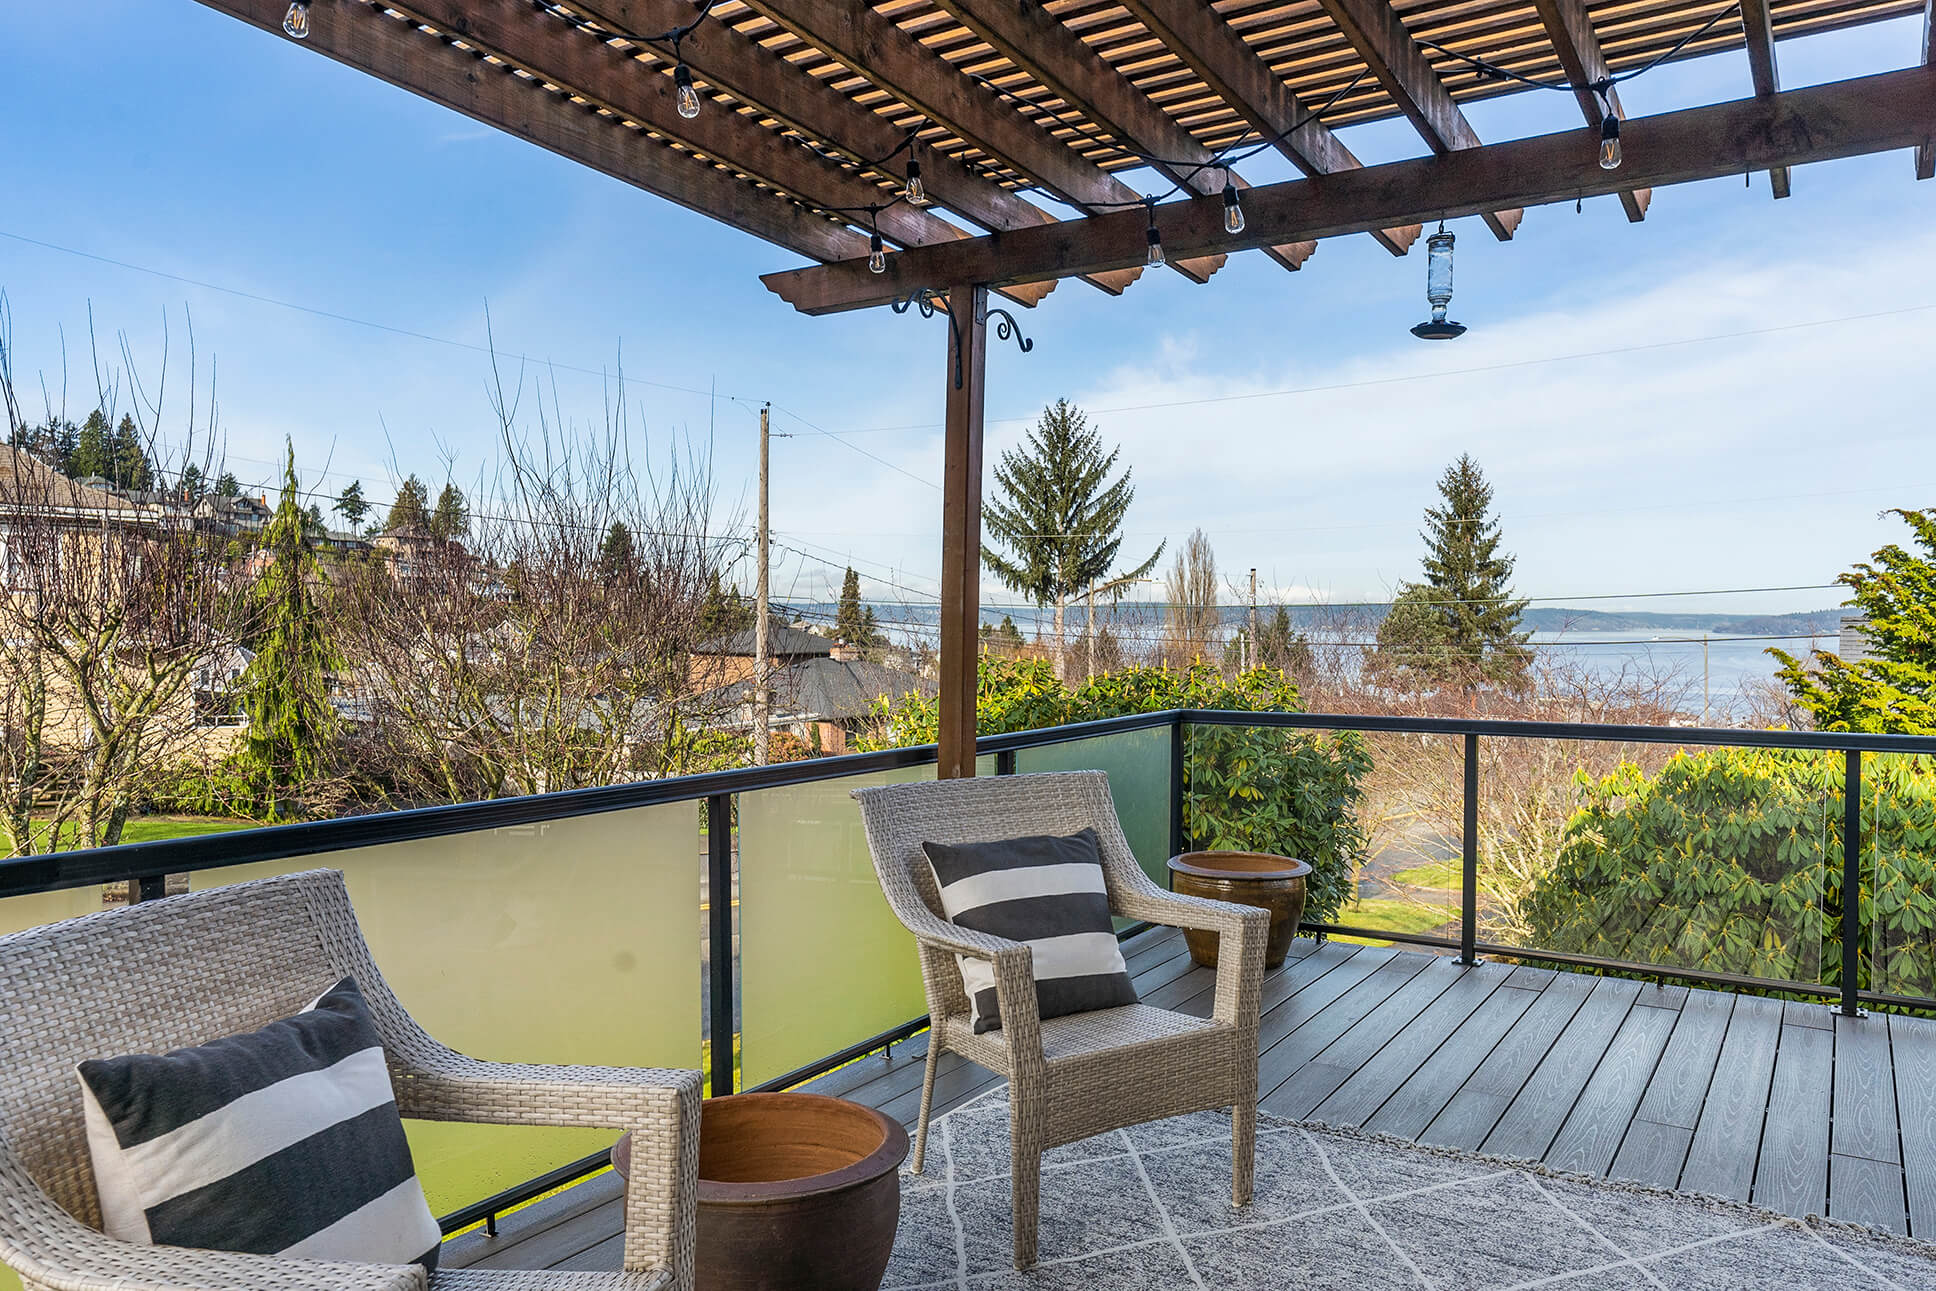 Gentle views of Old Town, Commencement Bay and Vashon Island